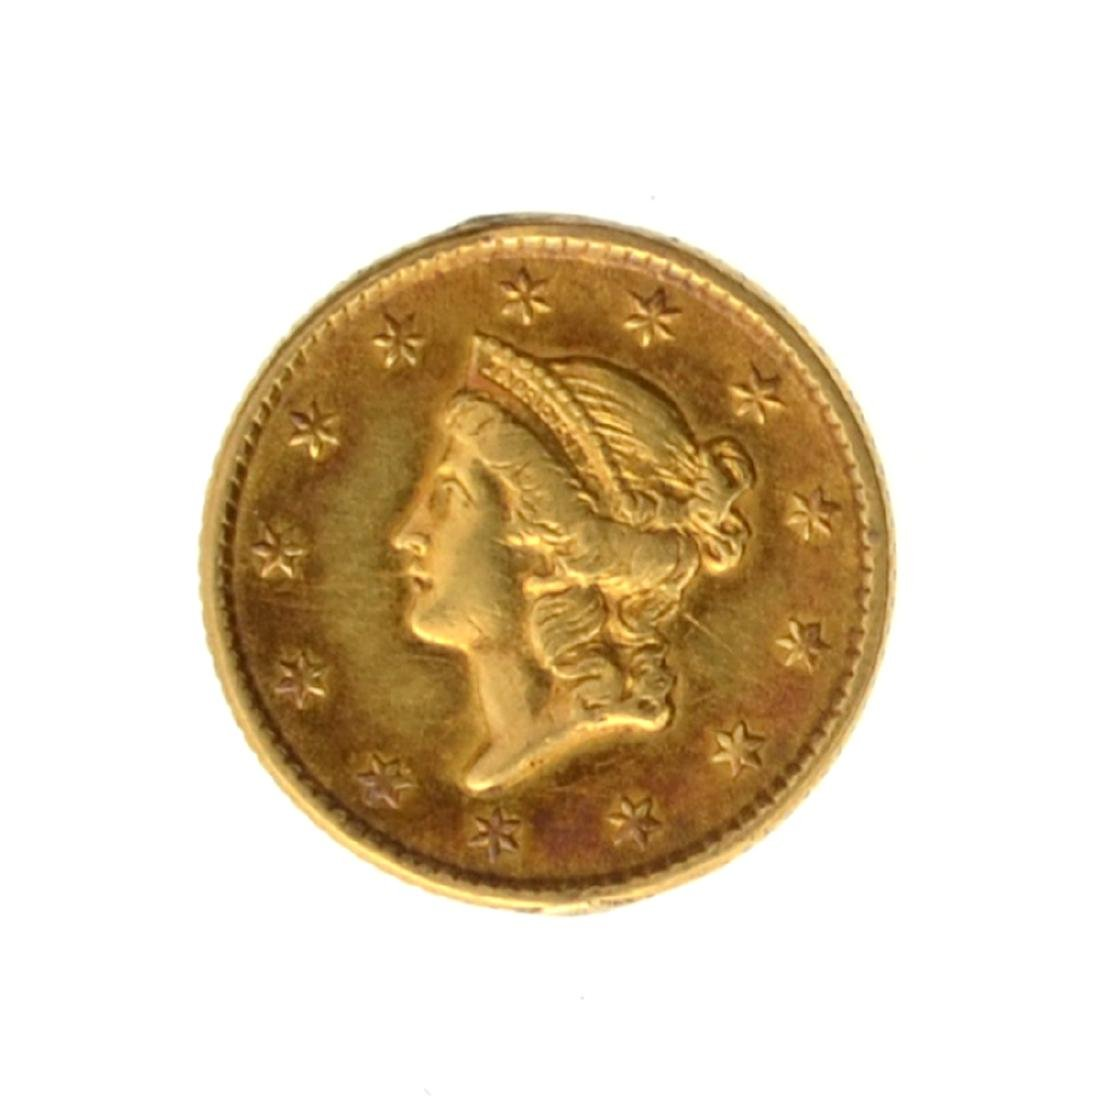 *1853 $1 U.S. Liberty Head Gold Coin - Great Investment